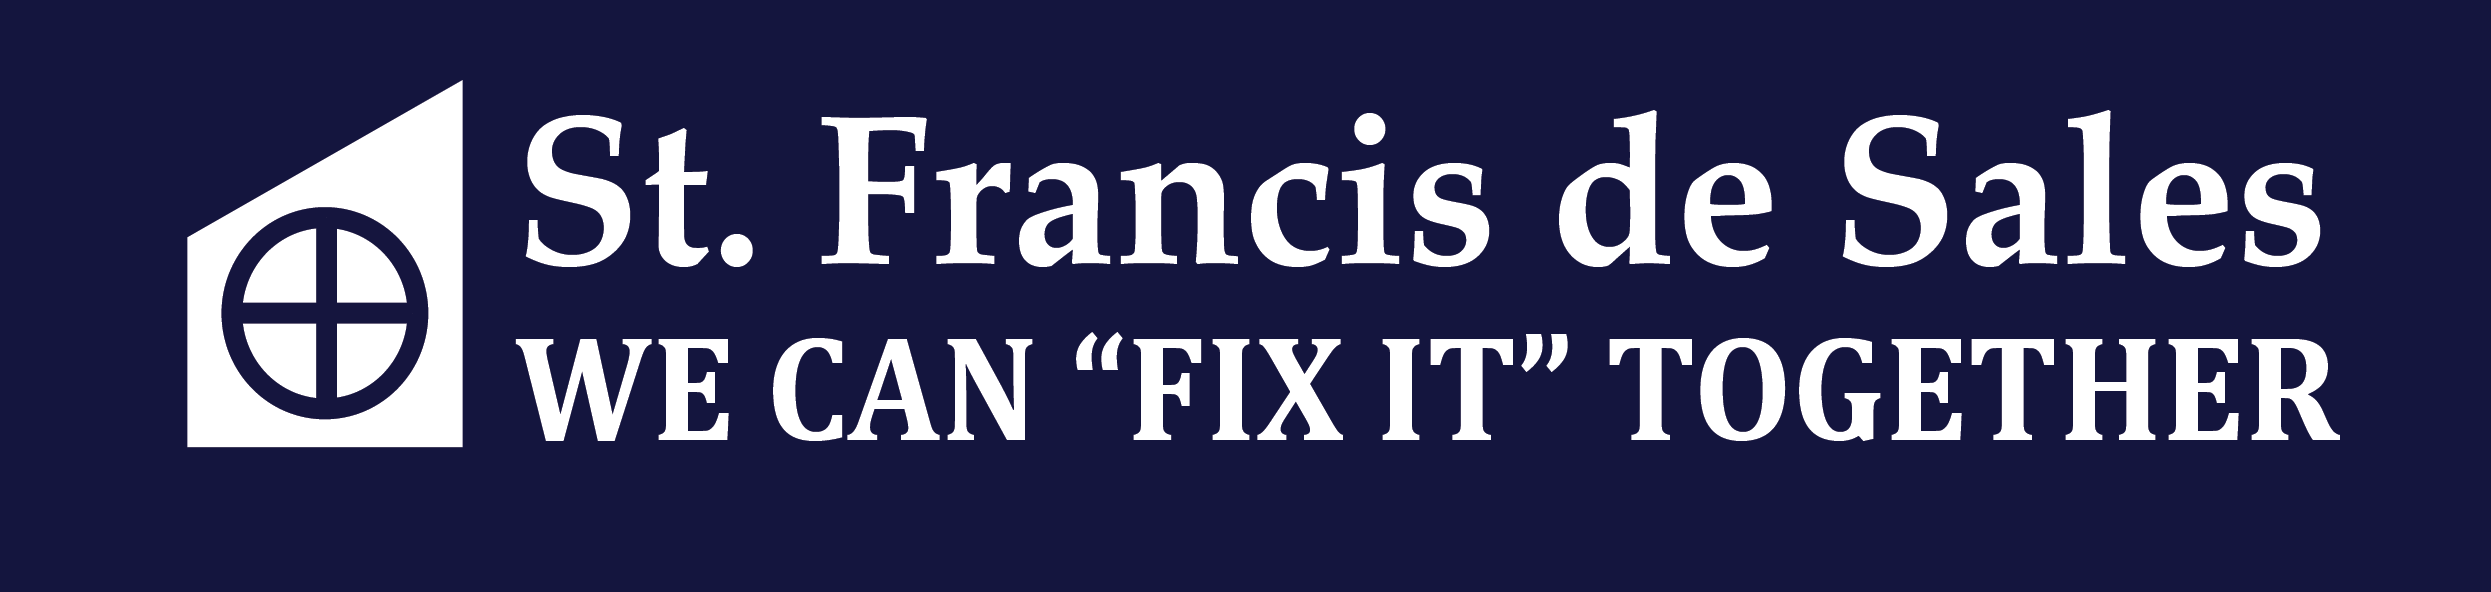 Fix_It_Campaign_WonBlue.png